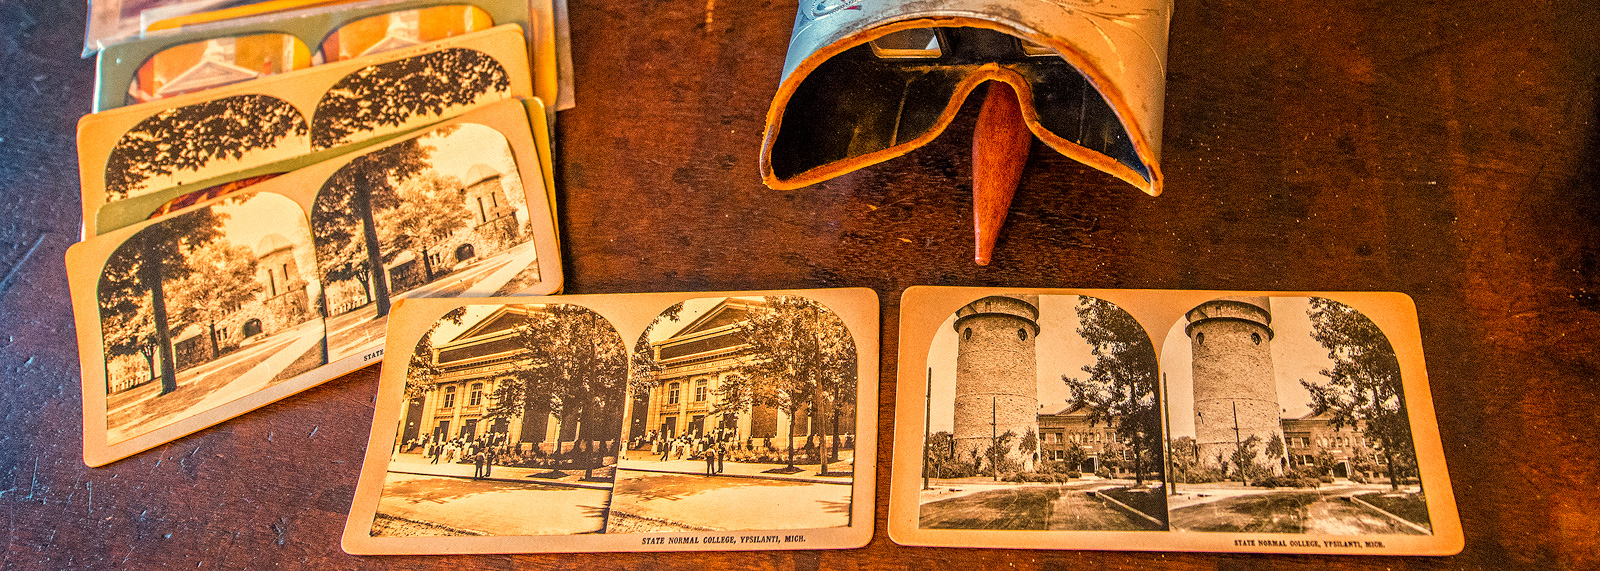 A stereoscope at the Ypsilanti Historical Museum